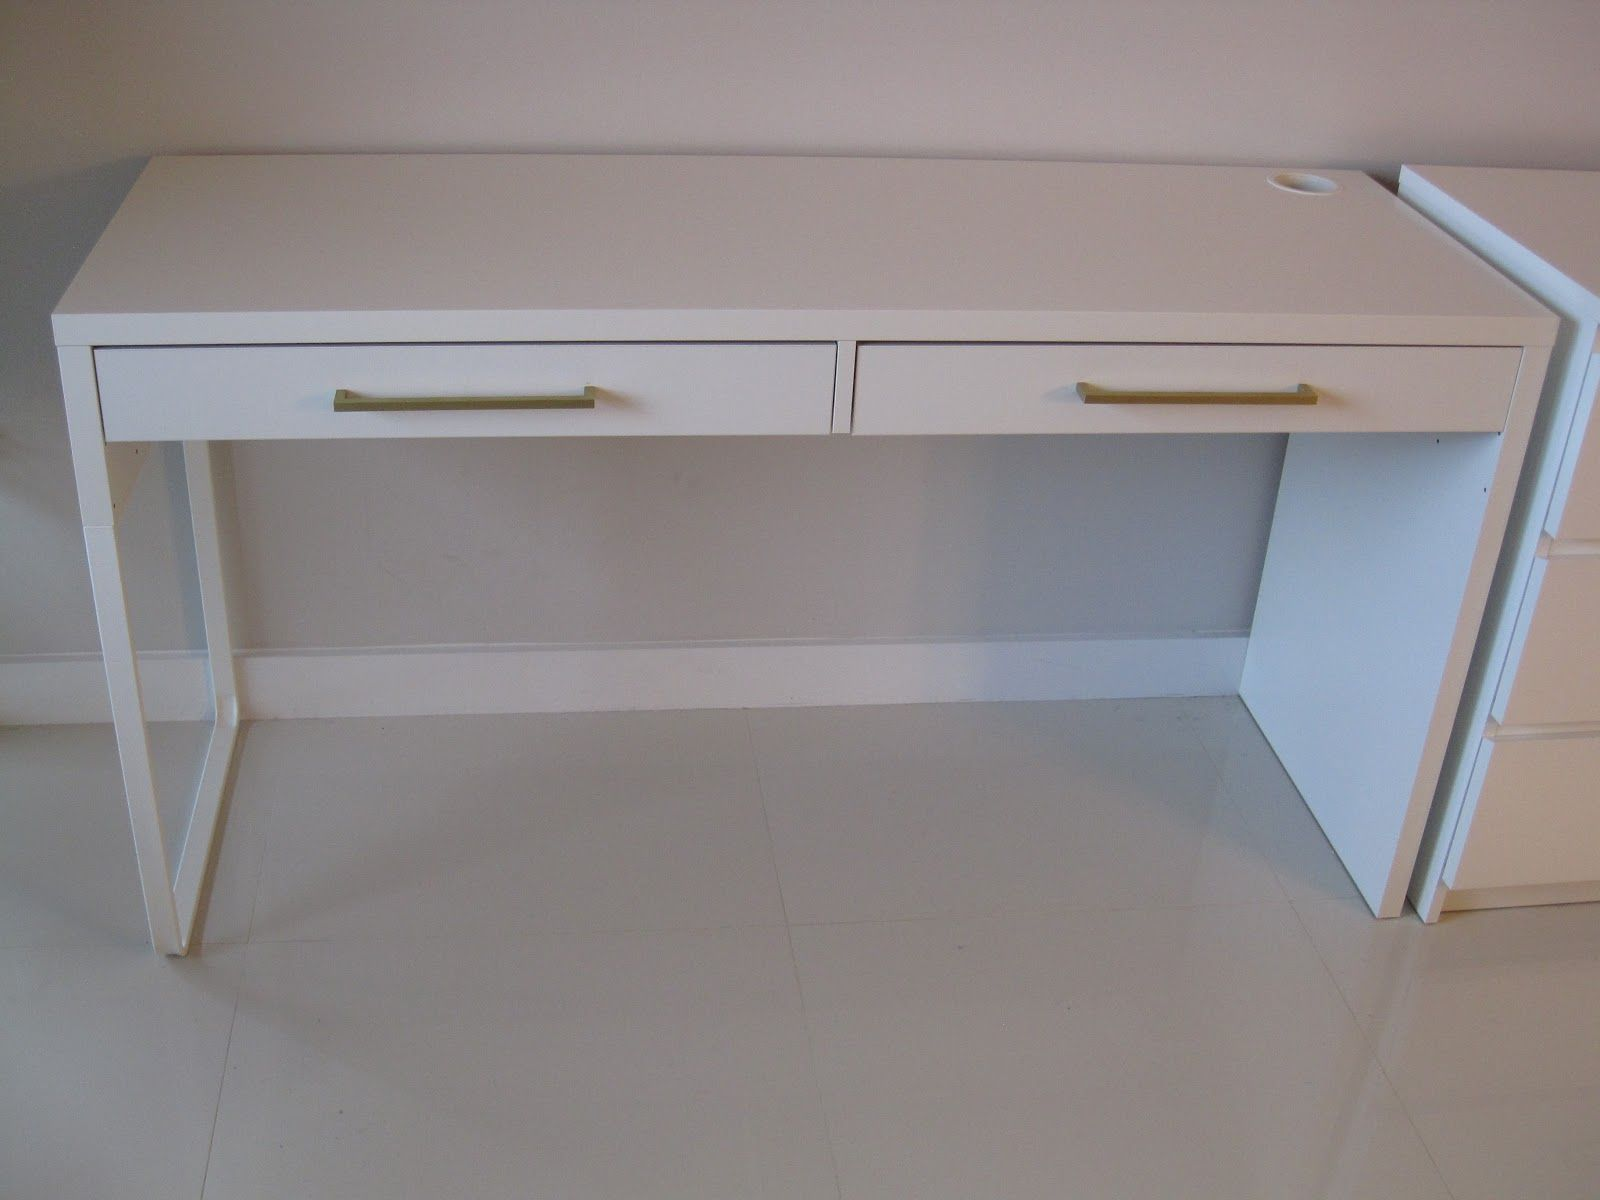 ikea micke desk hack google consider adding drawer pulls in style of dressers to